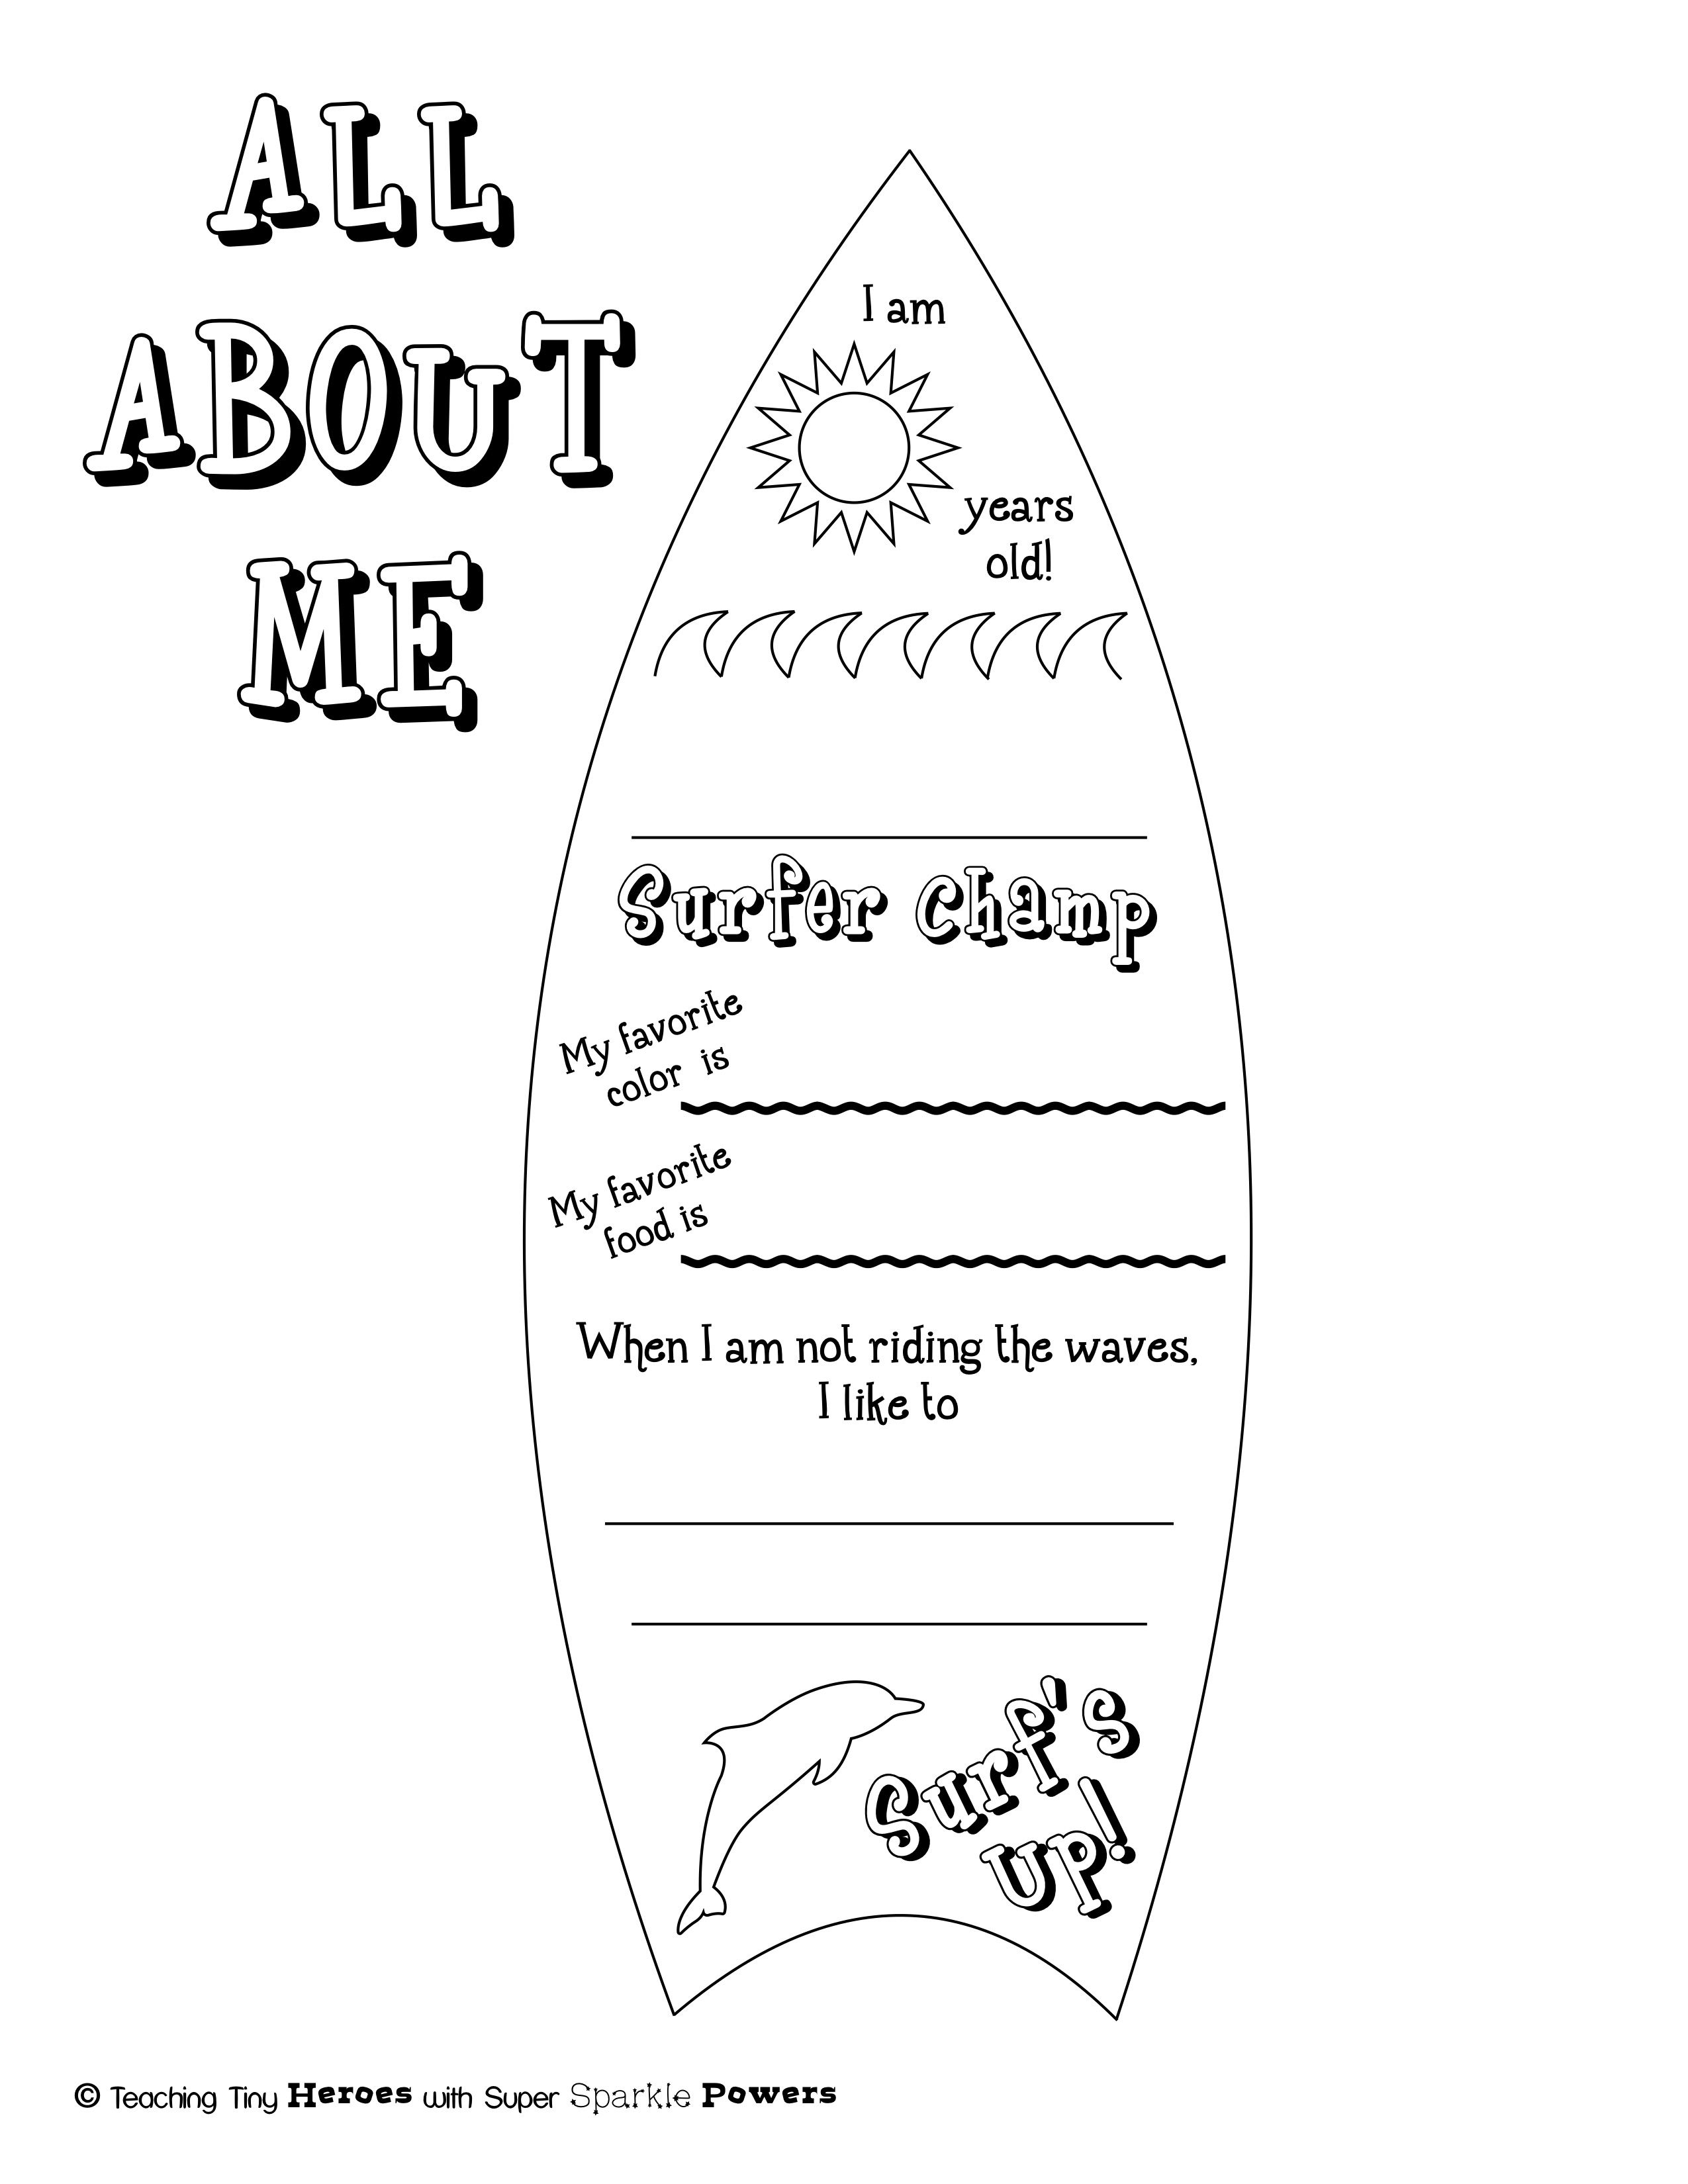 All About Me Surfboard Beach Themed Activity In